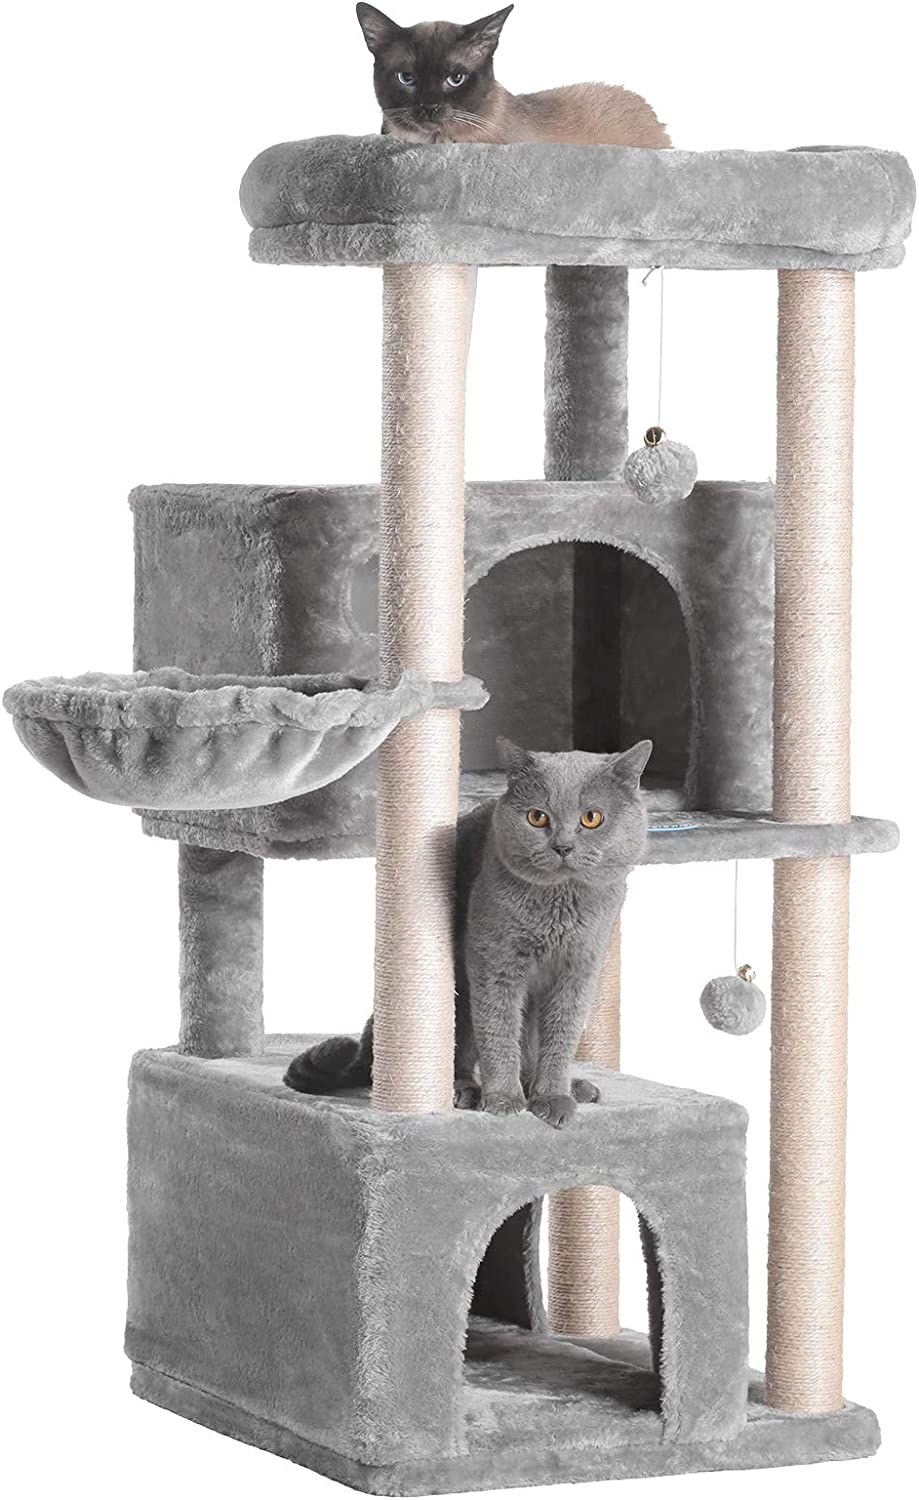 6. Hey-Brother Multi-Level Cat Tree Condo